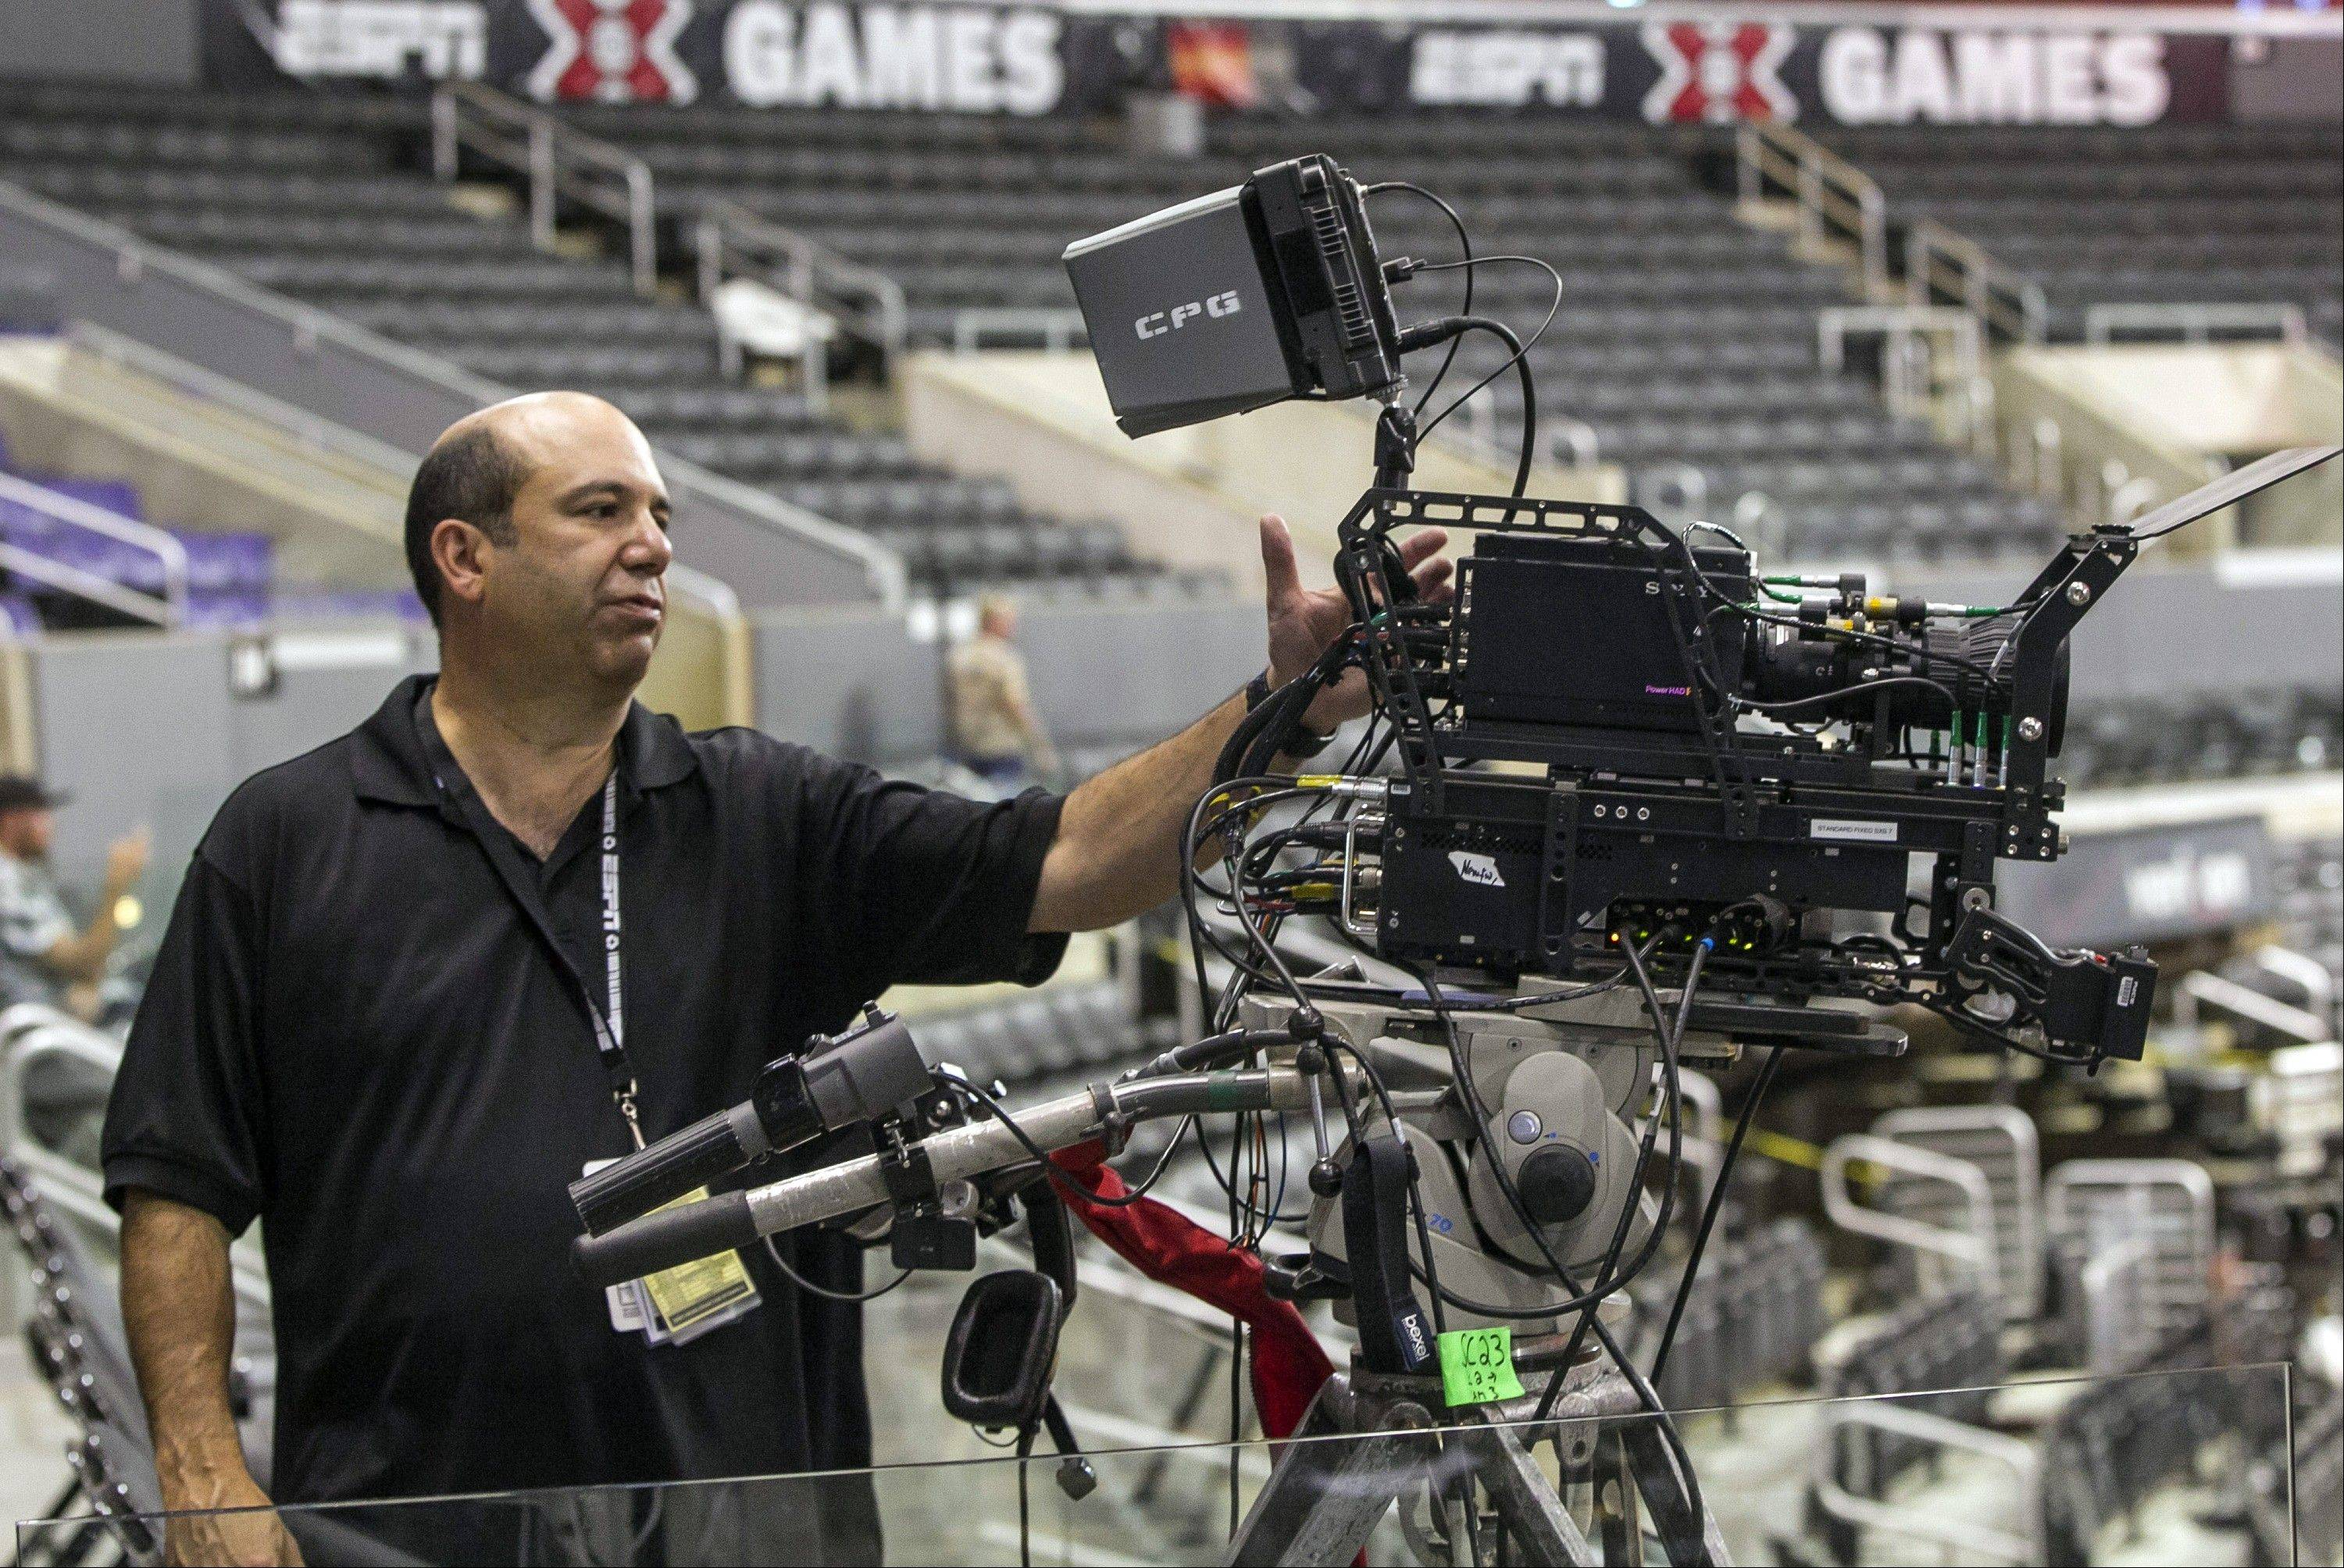 ASSOCIATED PRESSIn this June 27, 2012, photo, ESPN coordinating producer Phil Orlins shows a 3-D camera set up used by ESPN 3-D Network coverage at the ESPN X-Games held at the Staples Center in Los Angeles. ESPN will stop broadcasting in 3-D by the end of the year, the network said Wednesday.